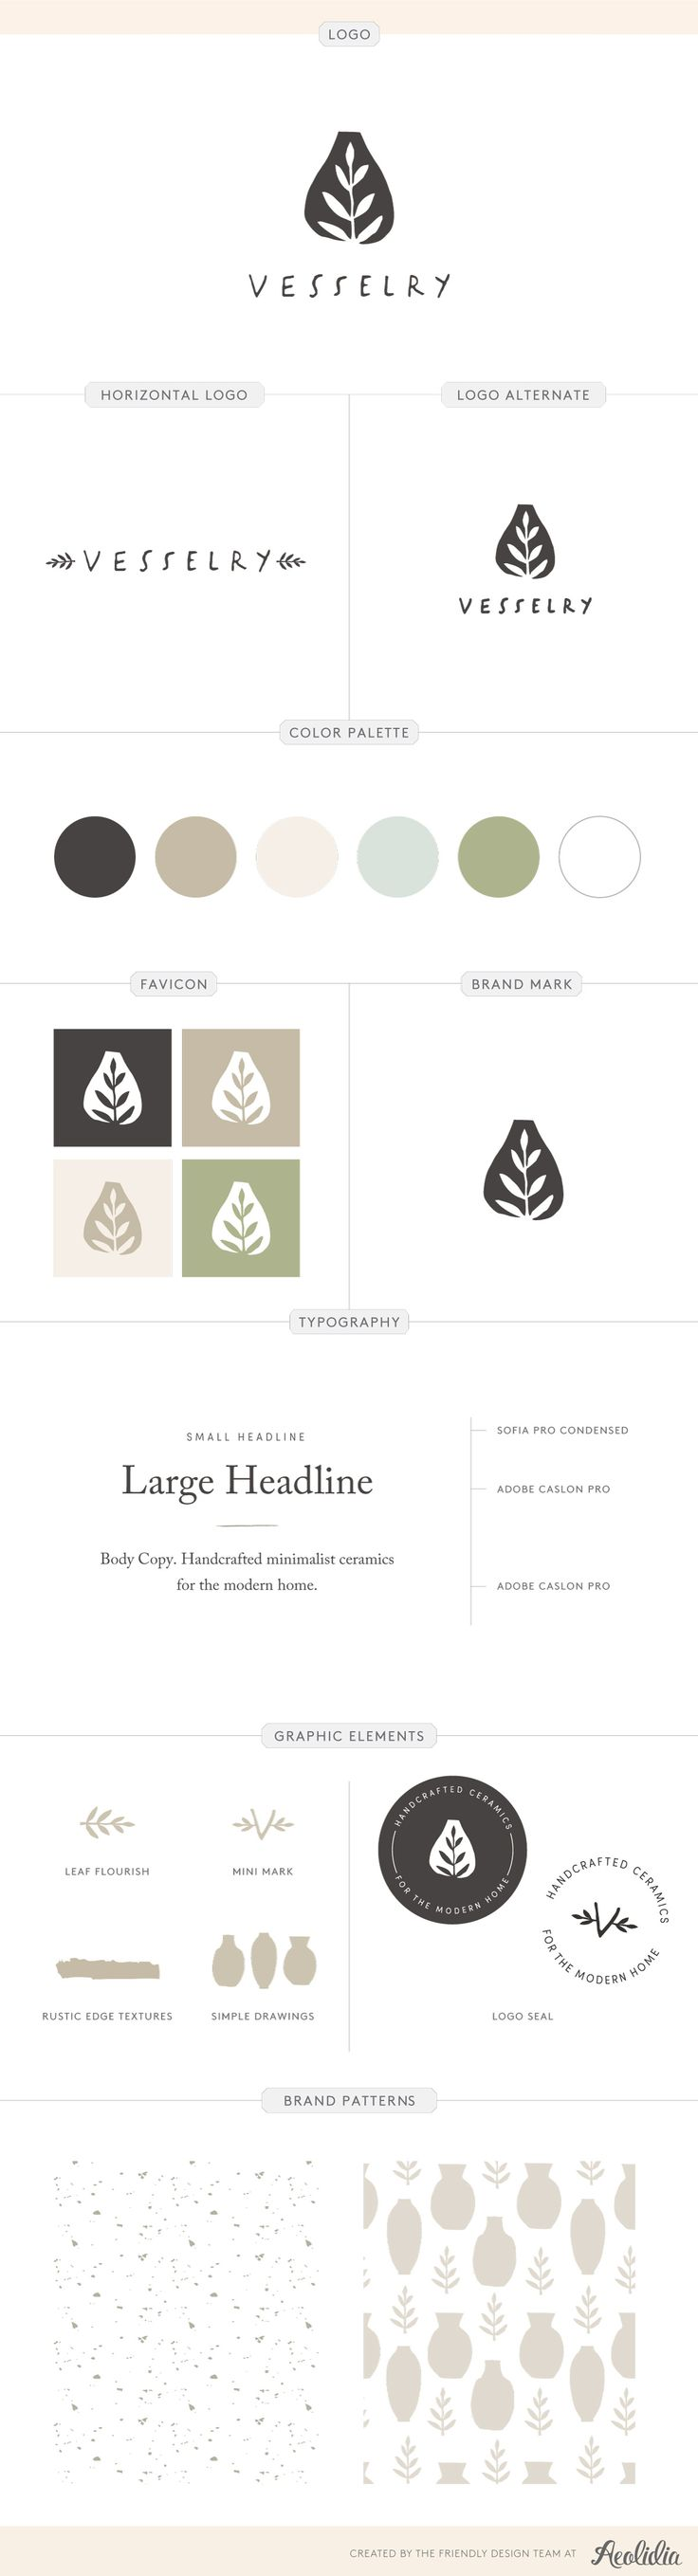 brand style guide for pottery business